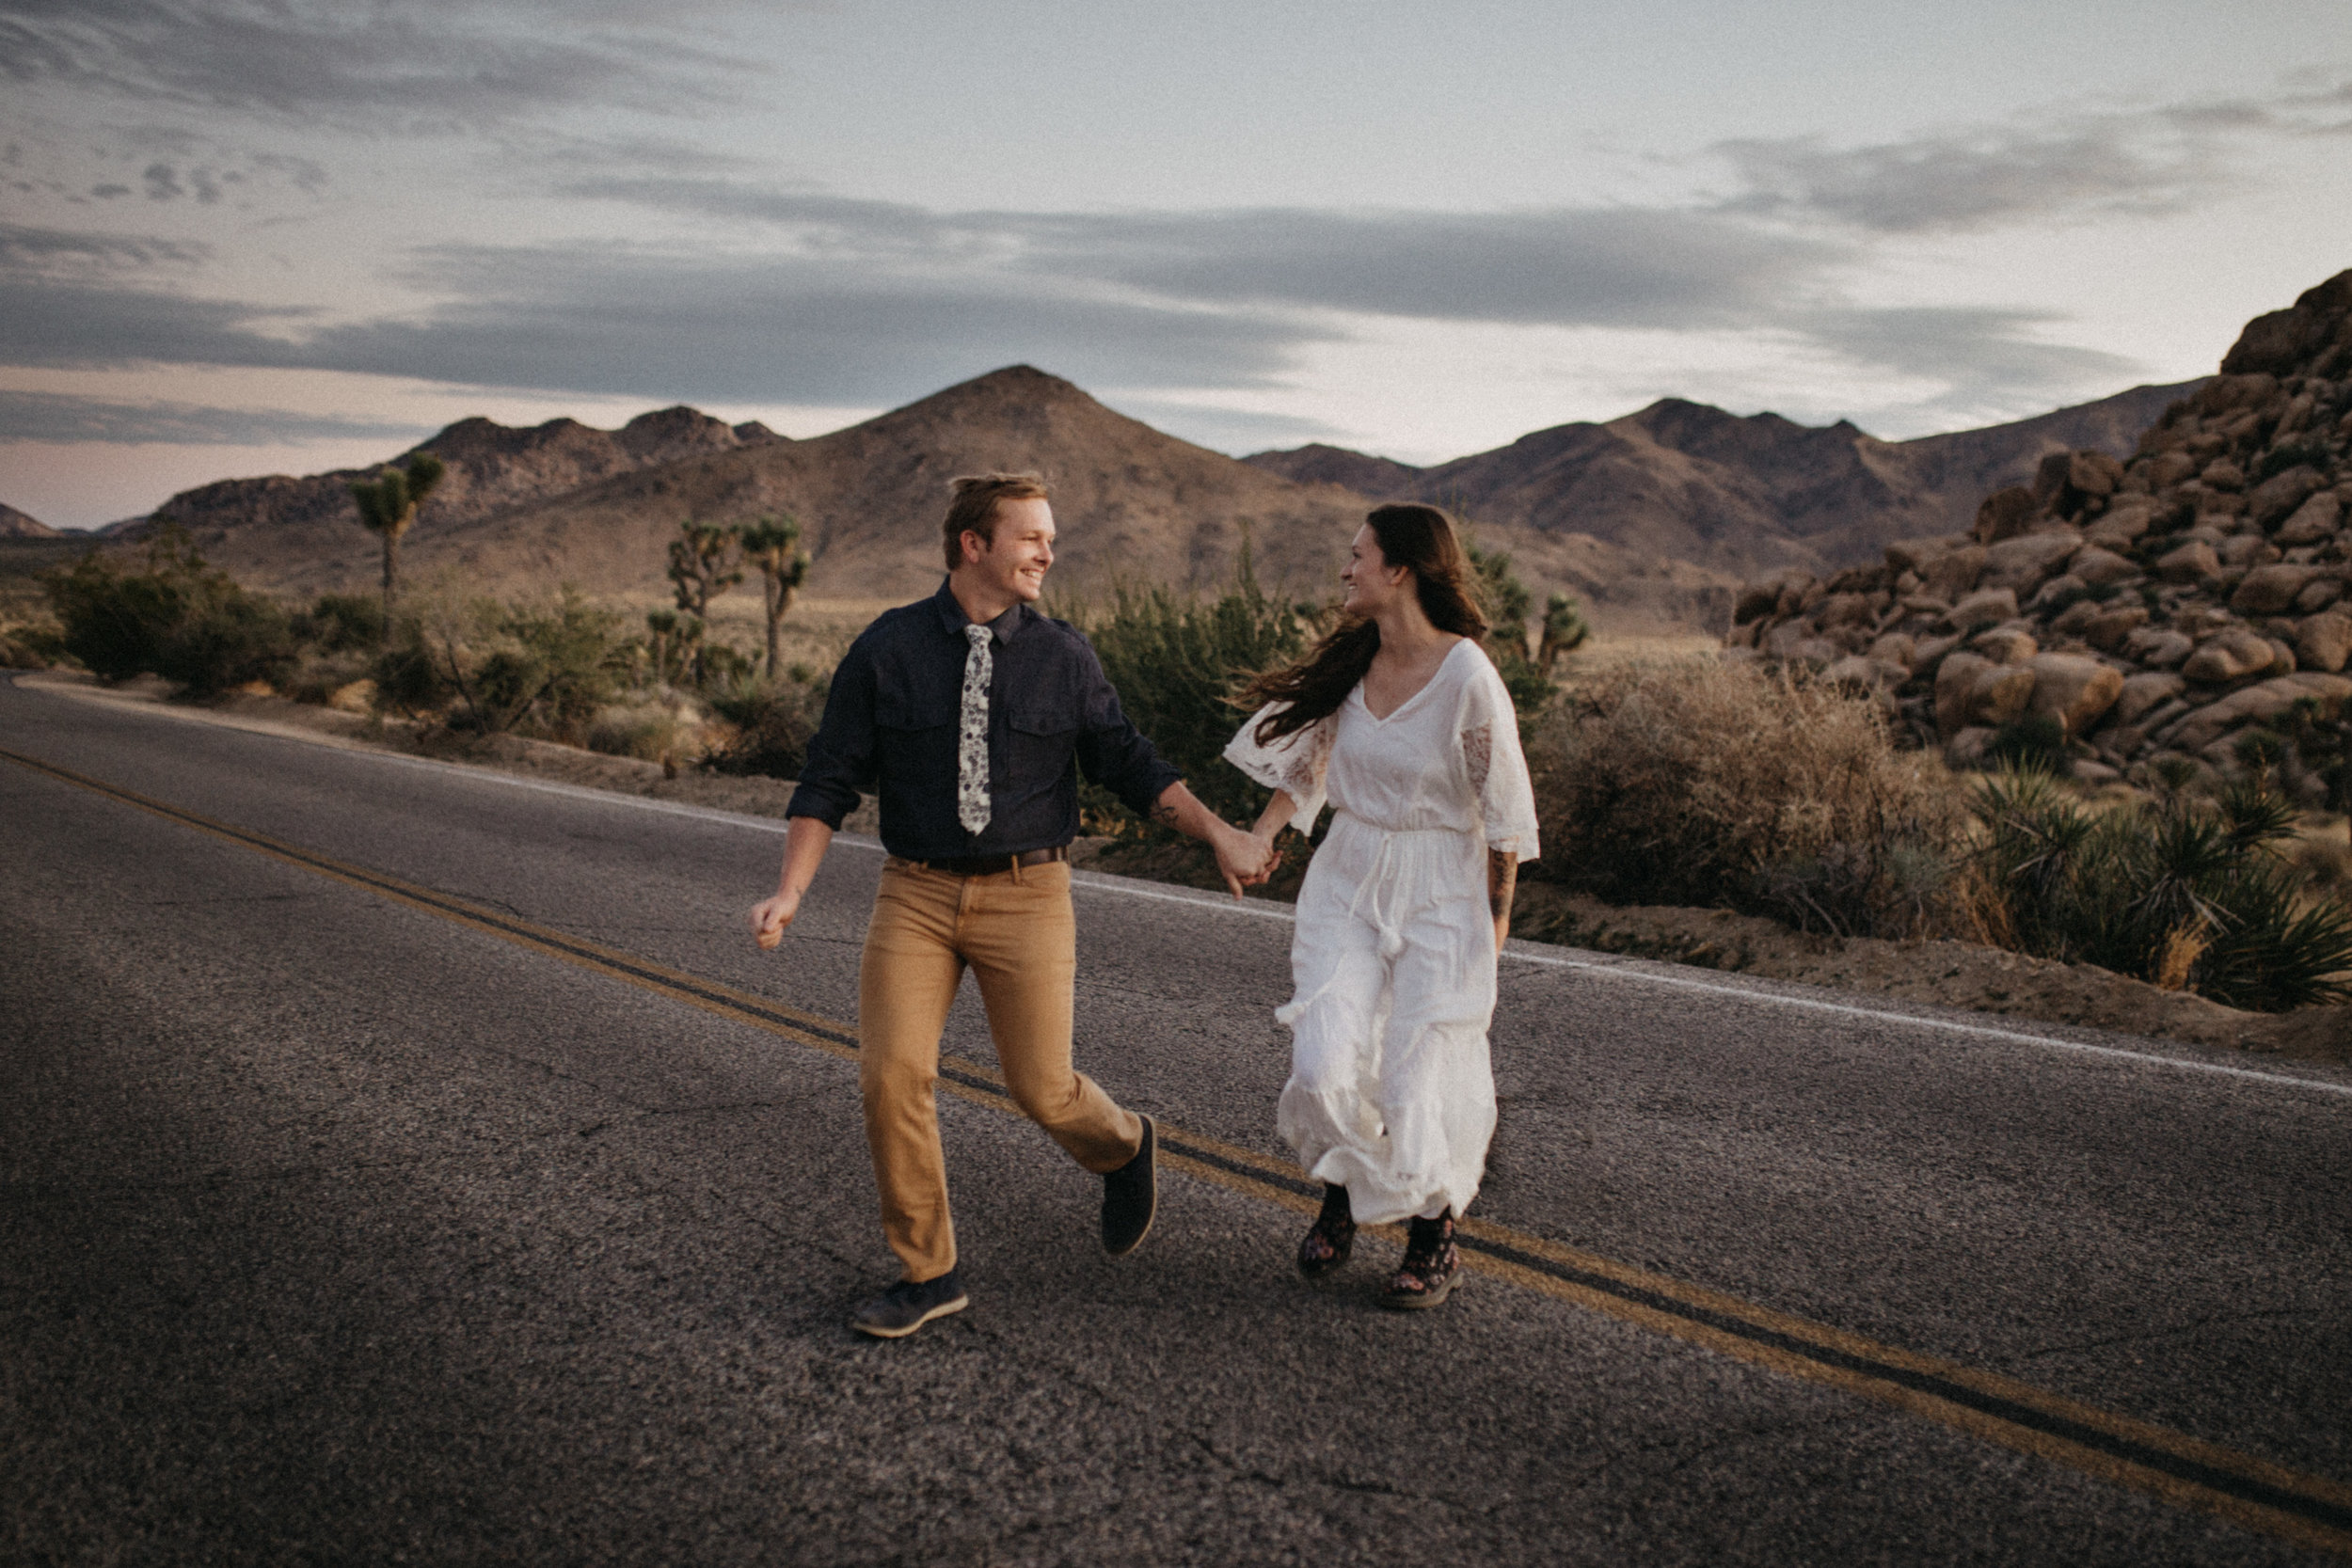 Joshua Tree National Park Adventure Couples Session Photographer Payton Marie Photography-38.jpg